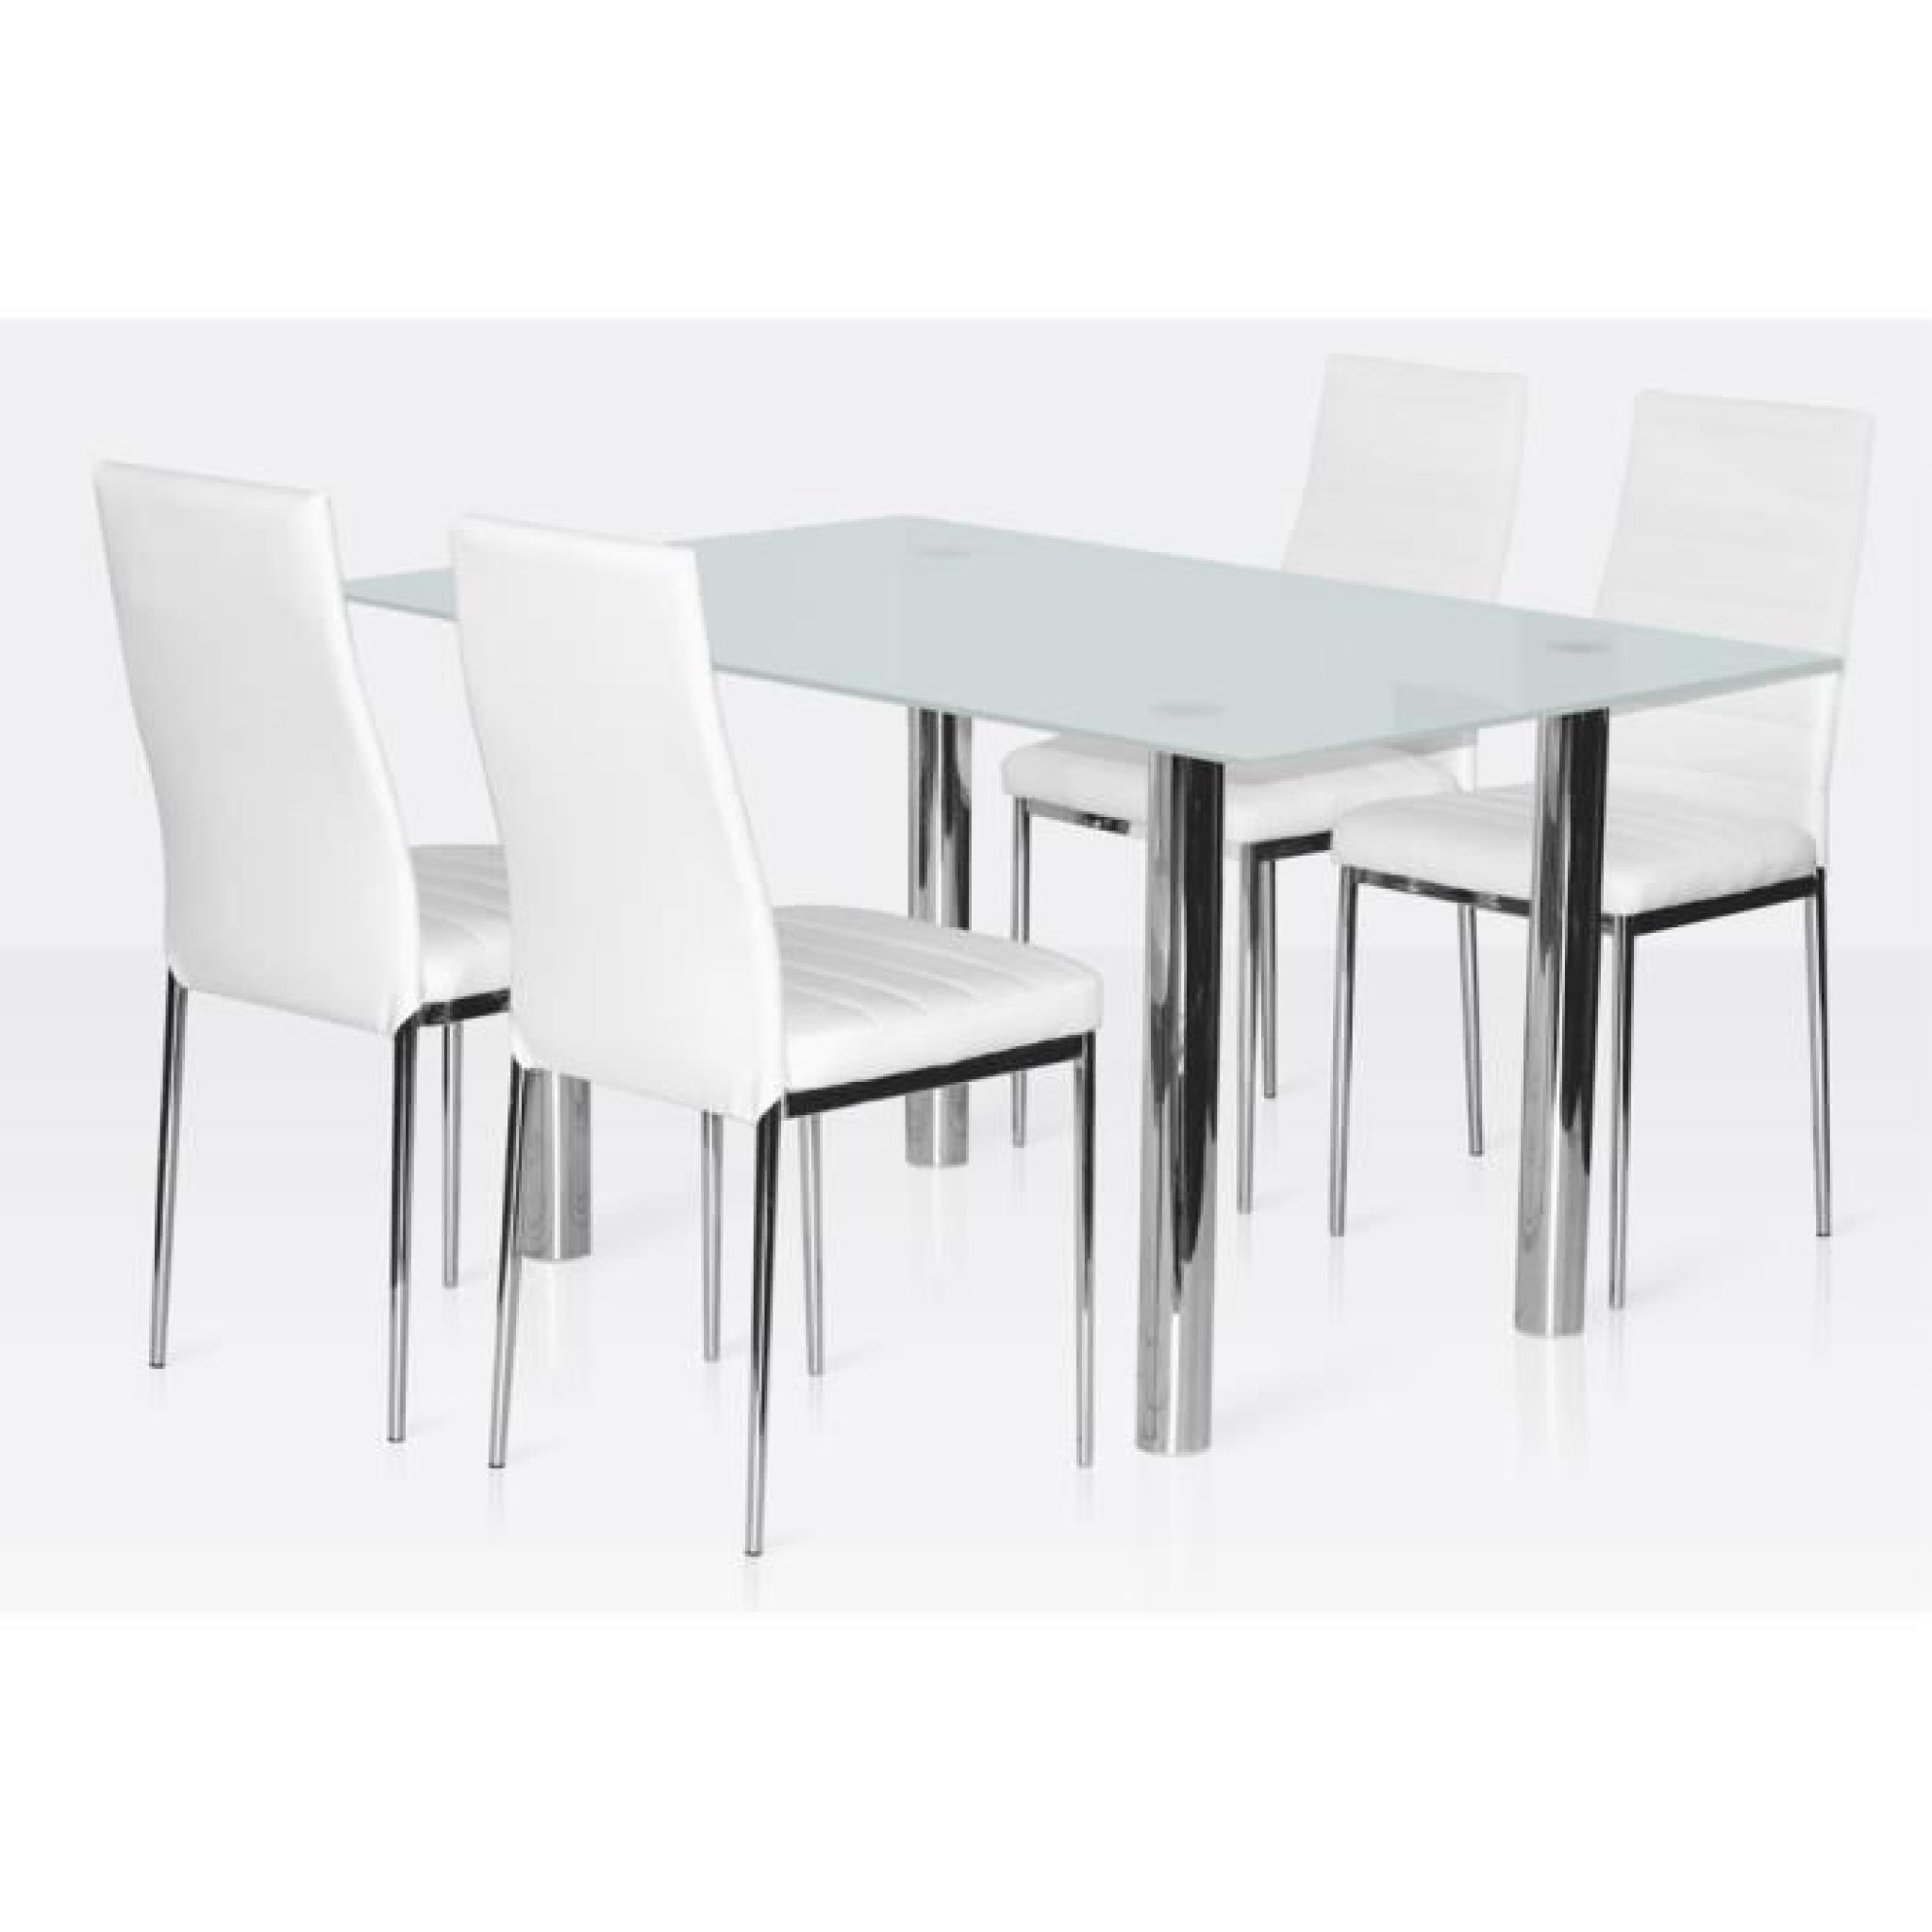 Ensemble salle manger 4 chaises table en verre blanc for Table a manger chaise